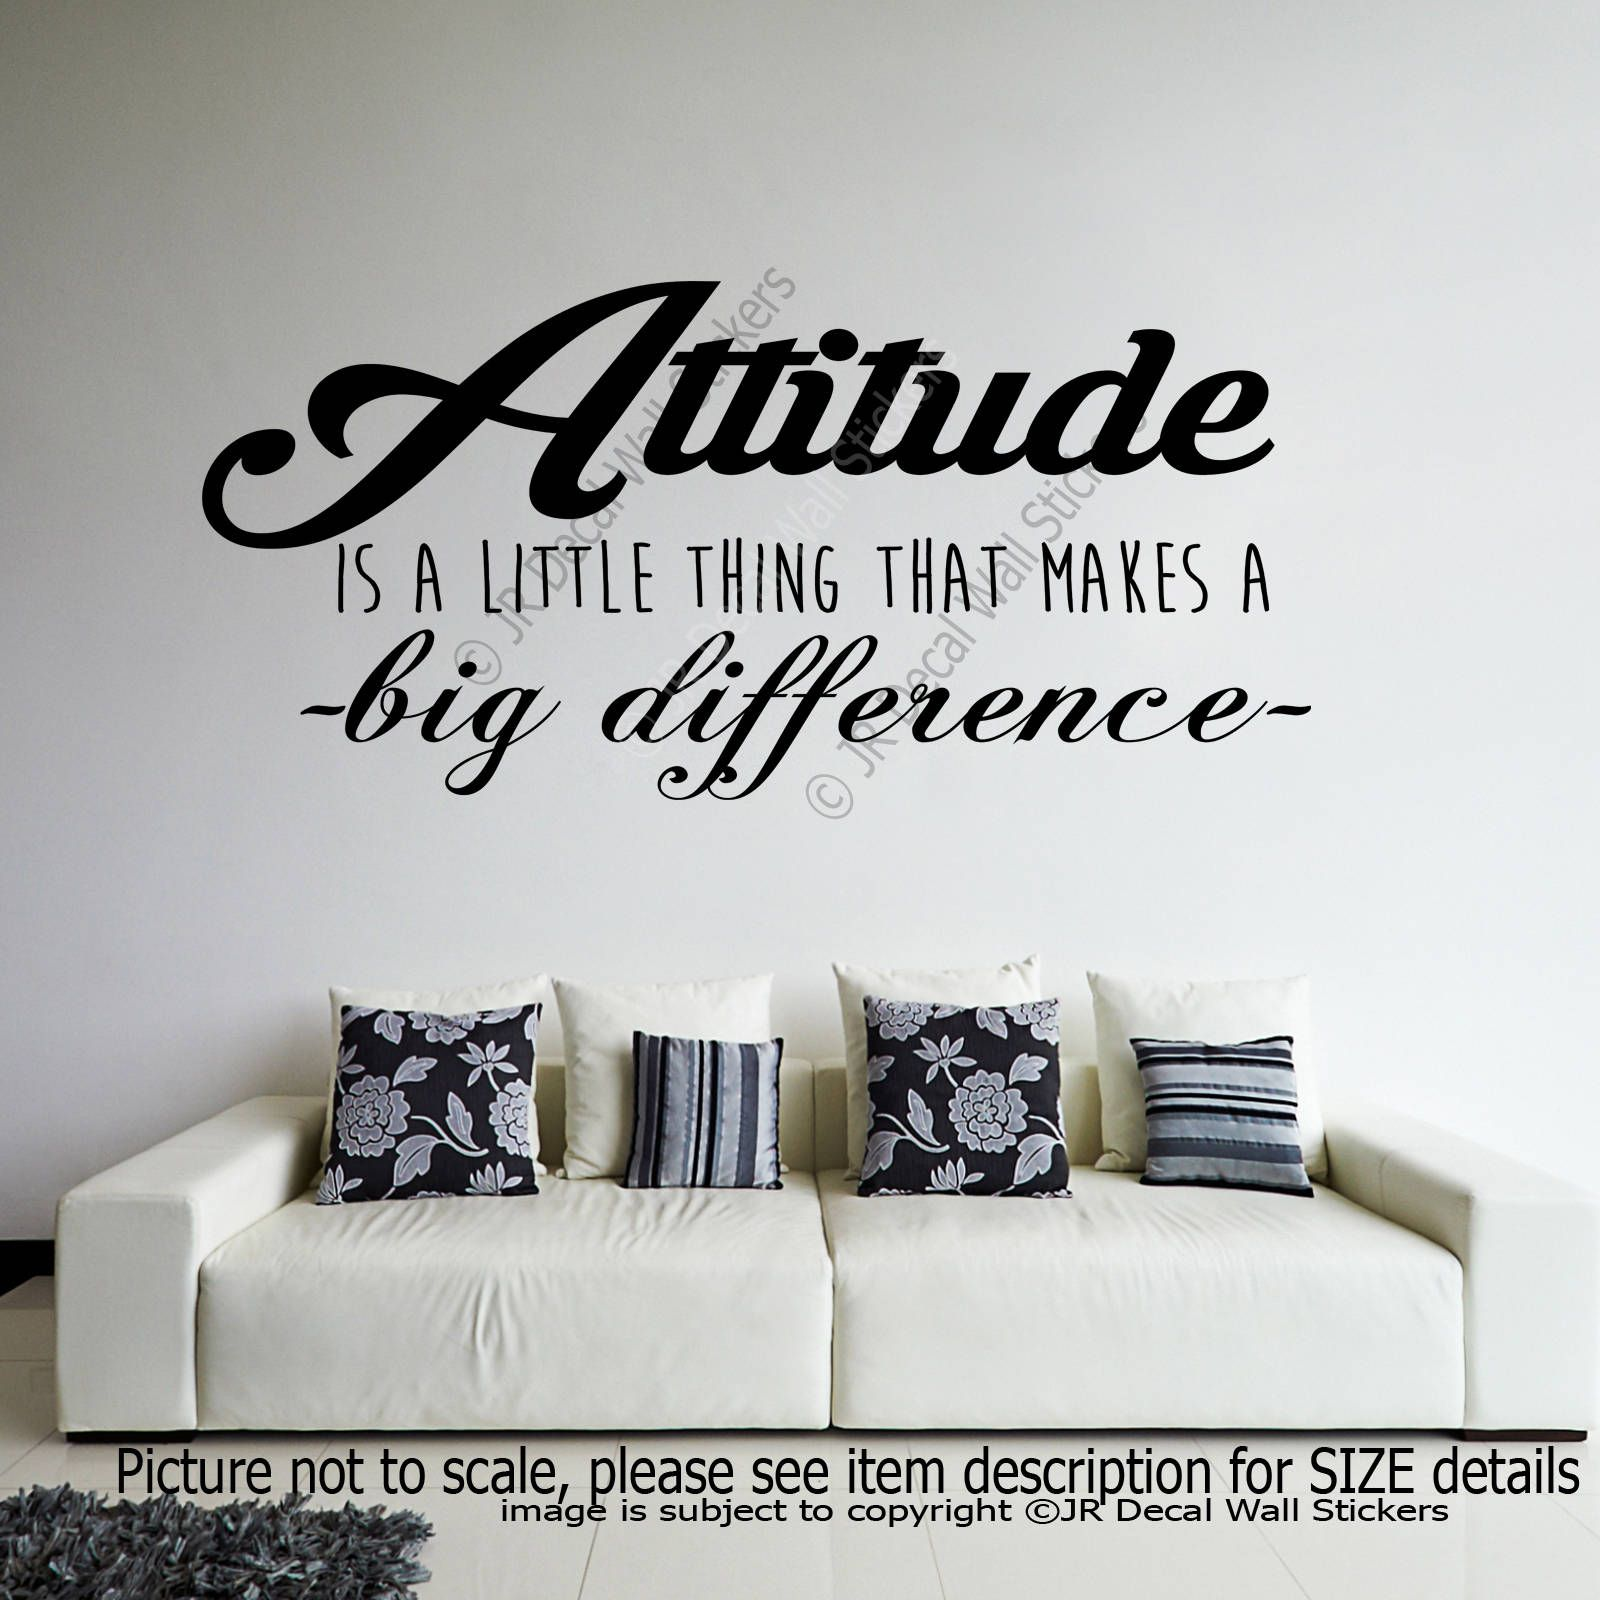 Attitude makes a big difference inspiring quote removable